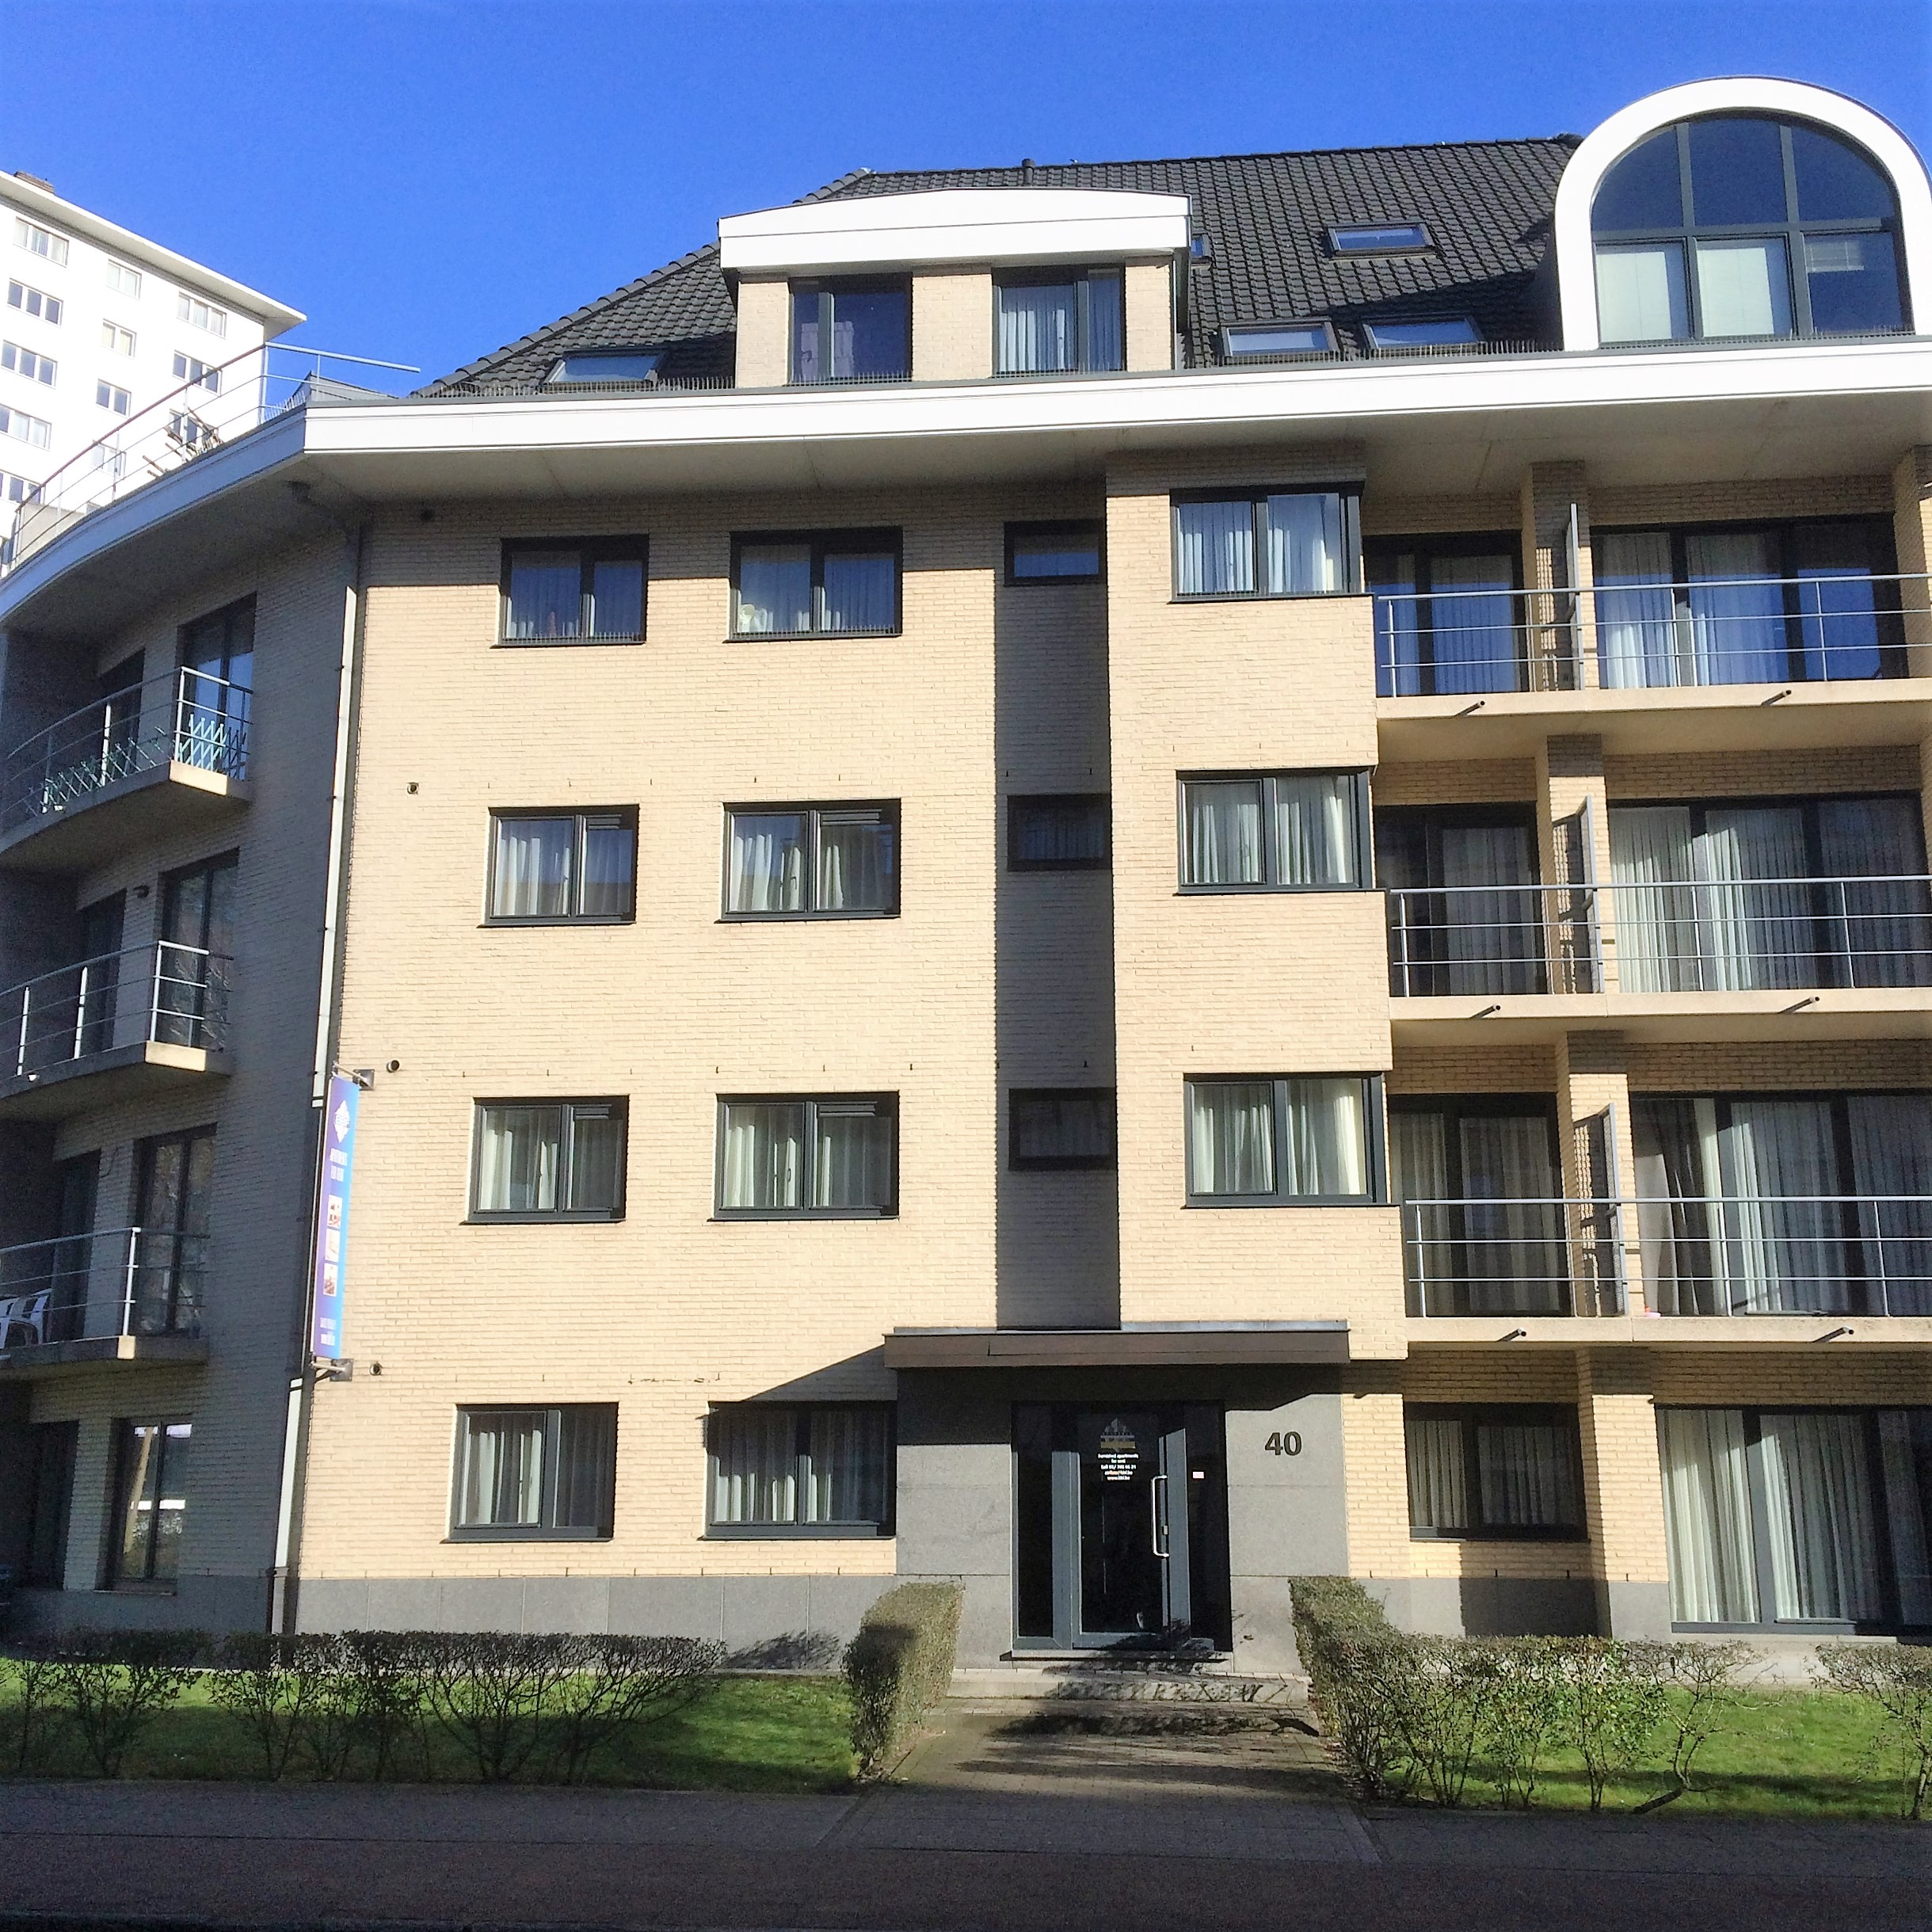 A vendre appartement 2 chambres bruxelles for Immo particulier